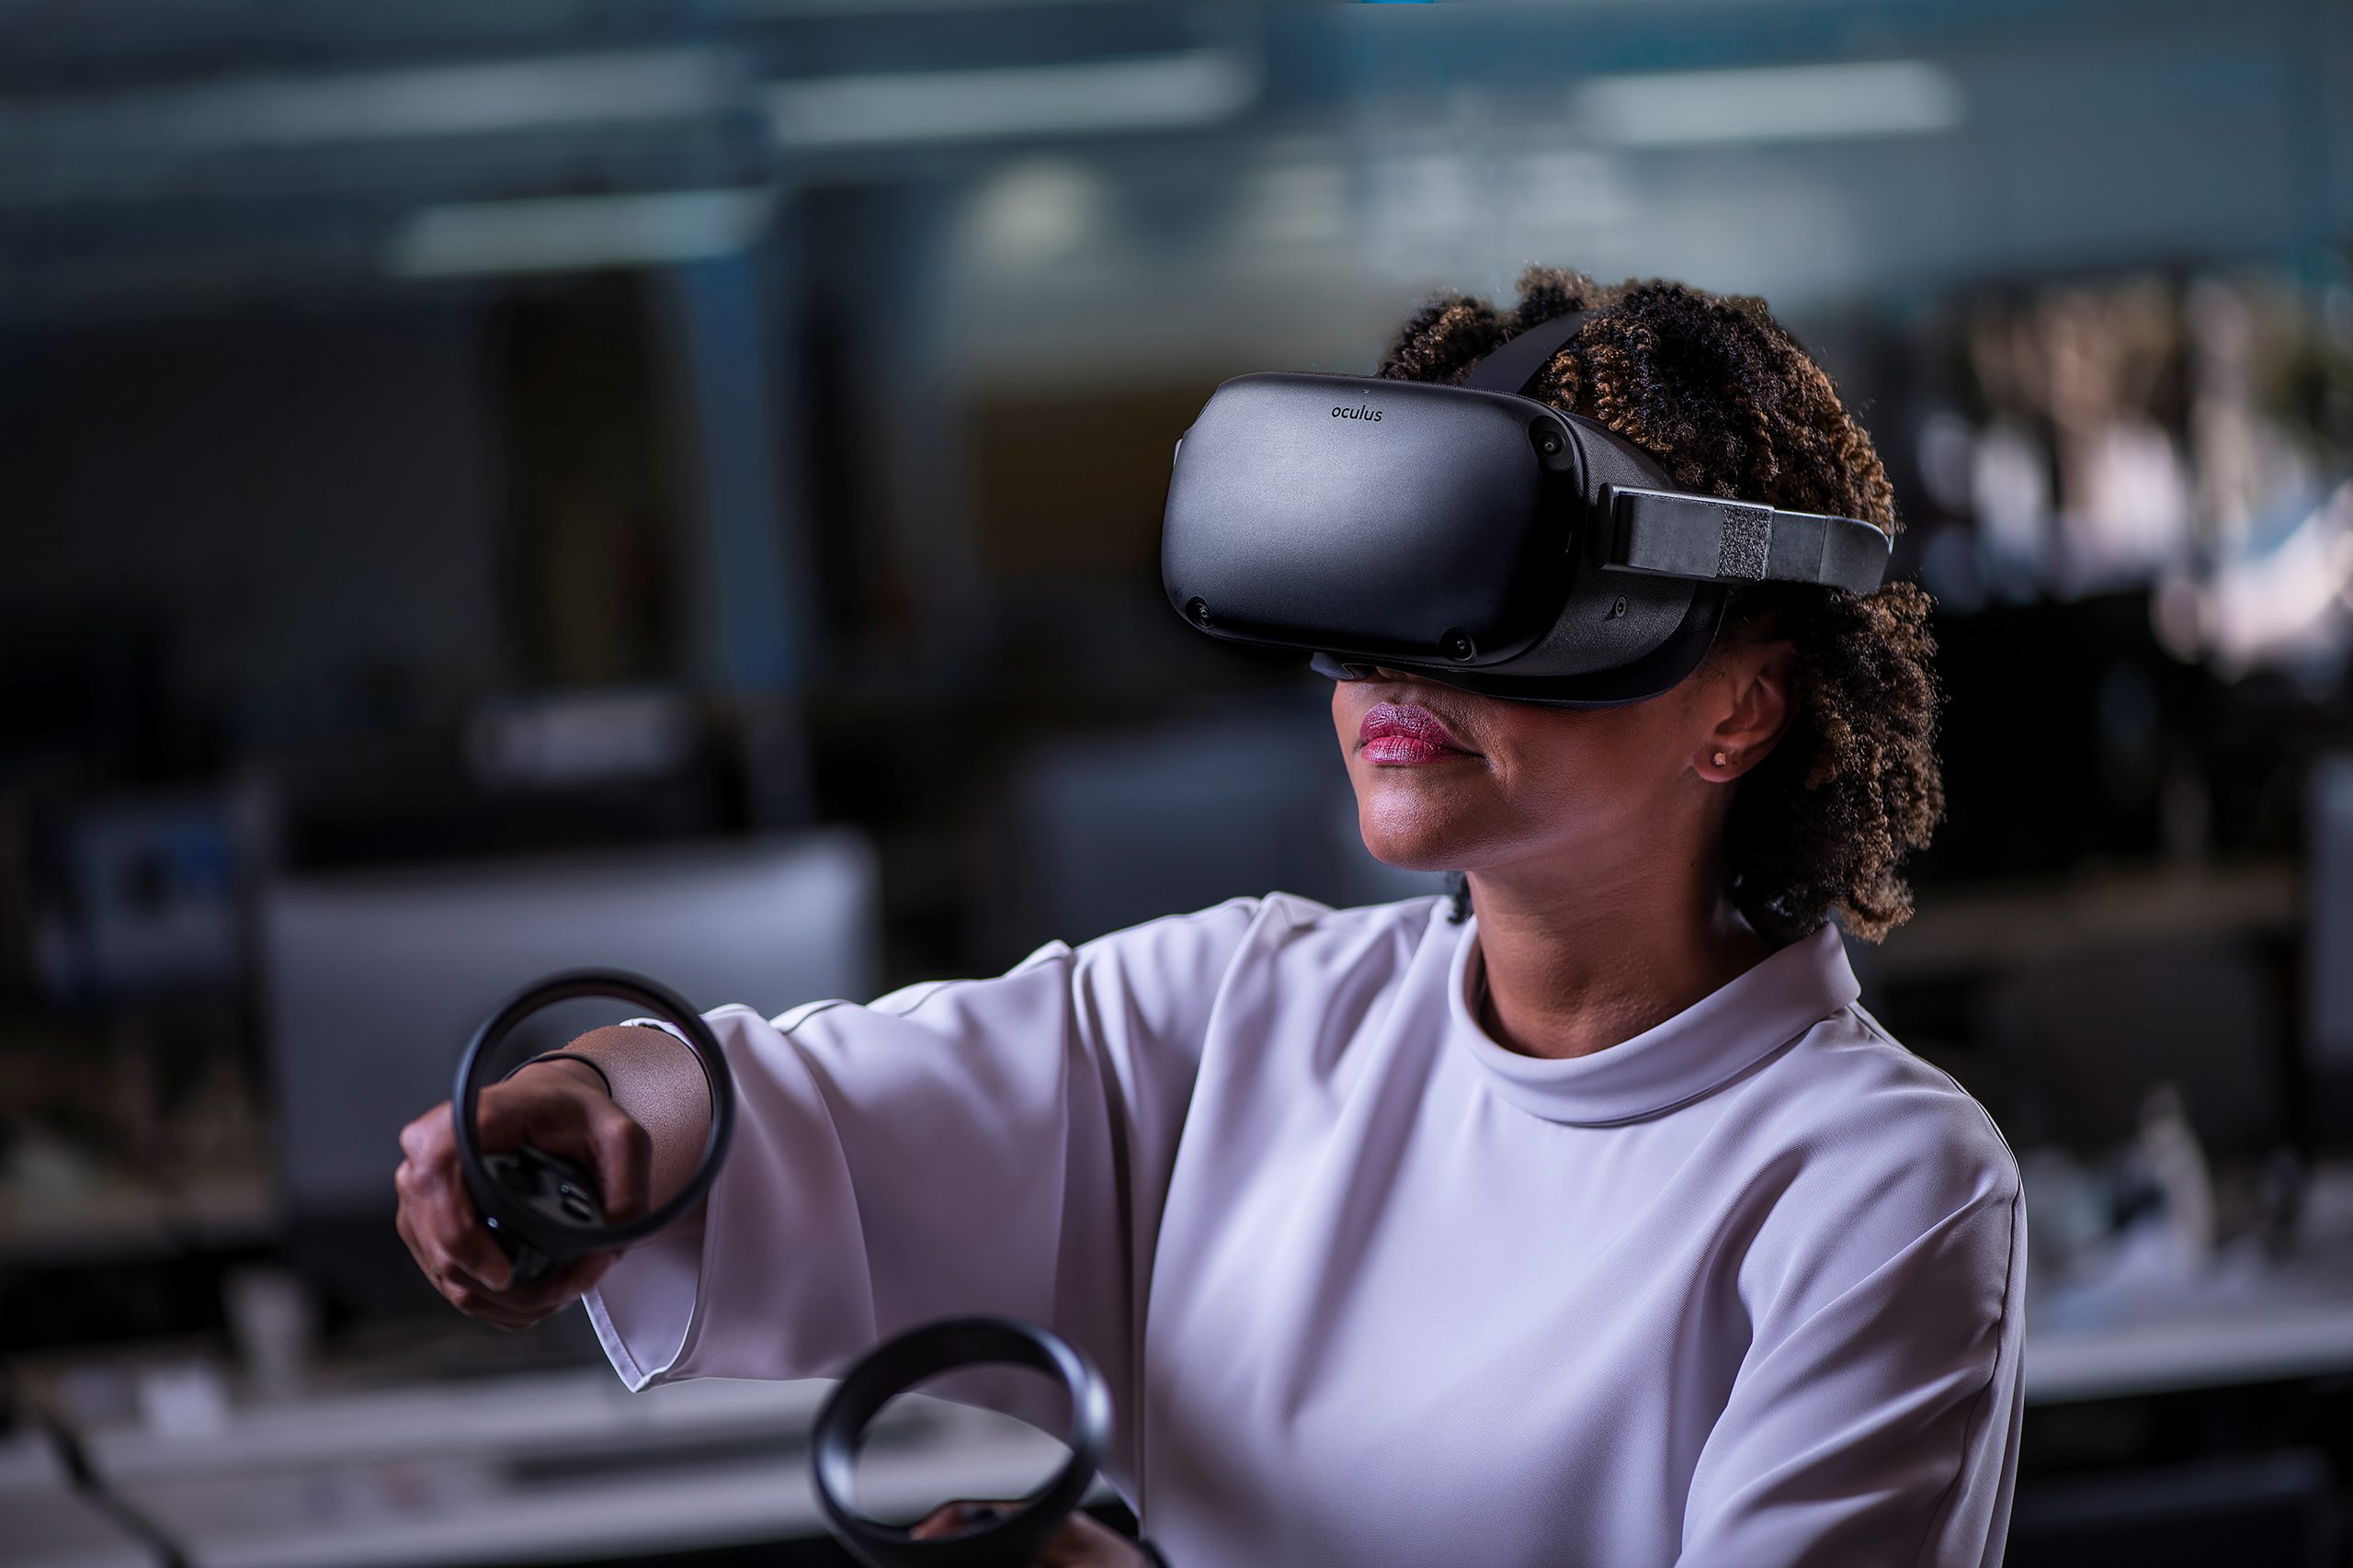 Oculus Quest all-in-one VR device is shown in an undated photo